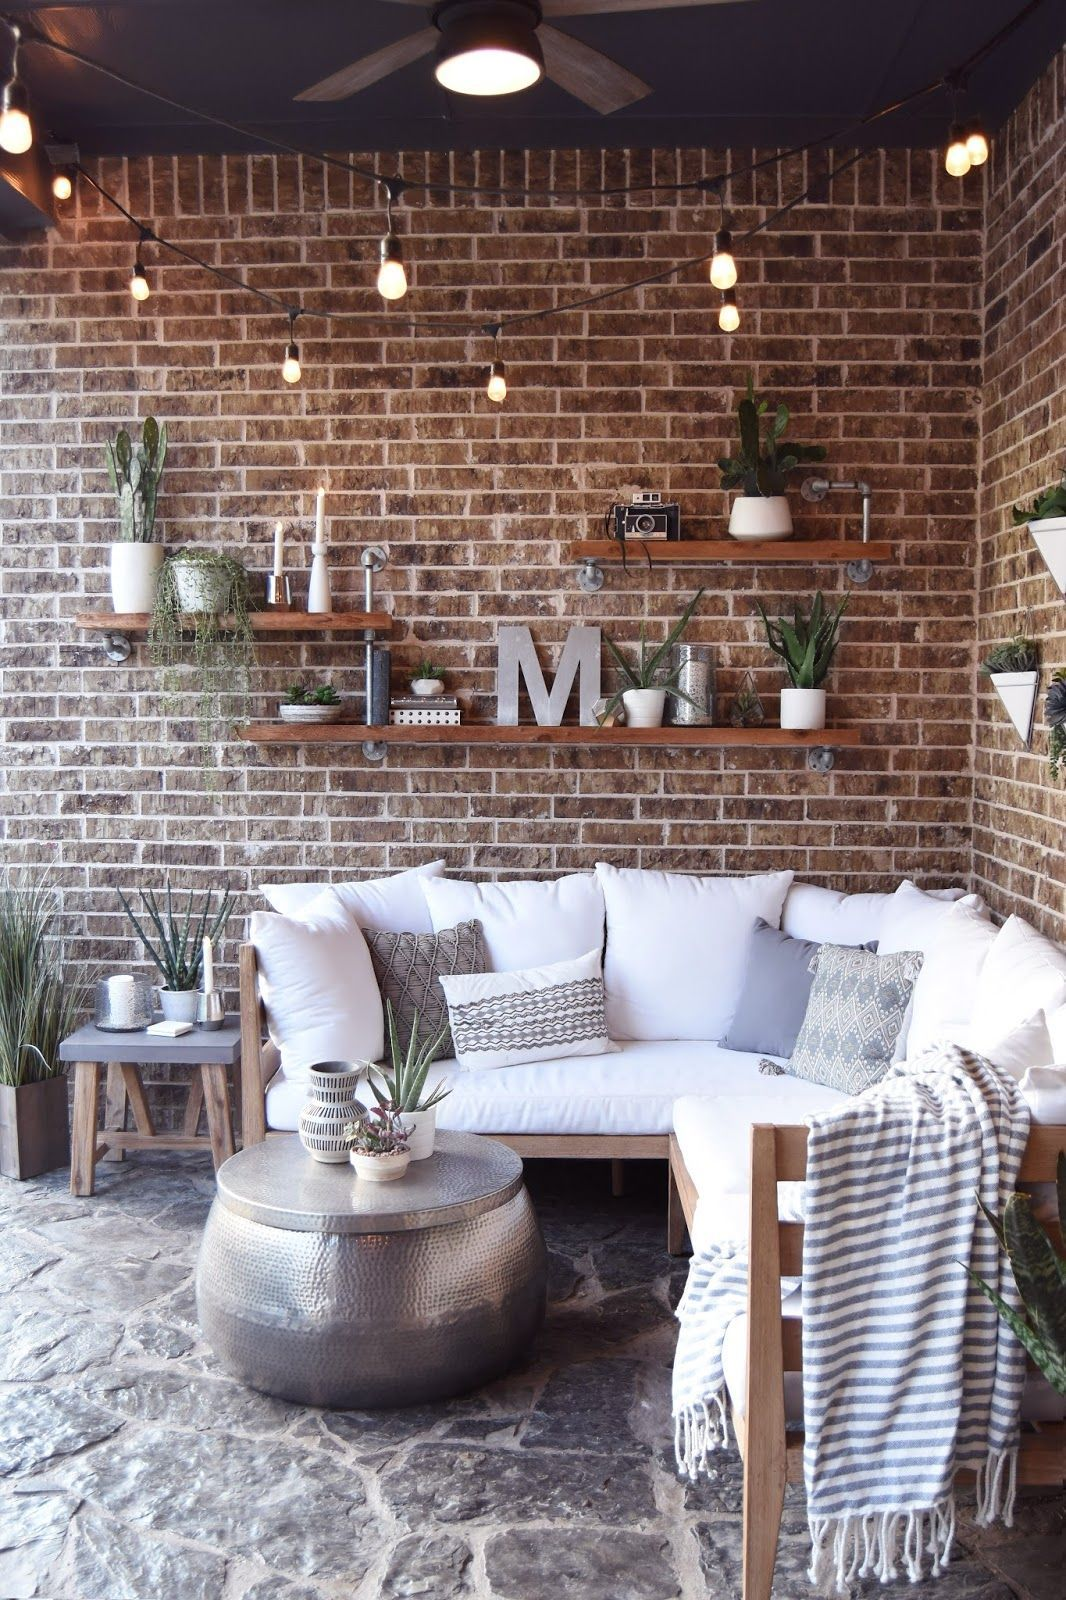 images creative home lighting patiofurn home pillow thought home outdoor living space if you are new coming from egg shell home welcome im so glad youre here at the en creative rustic lighting ideas pinterest shells living